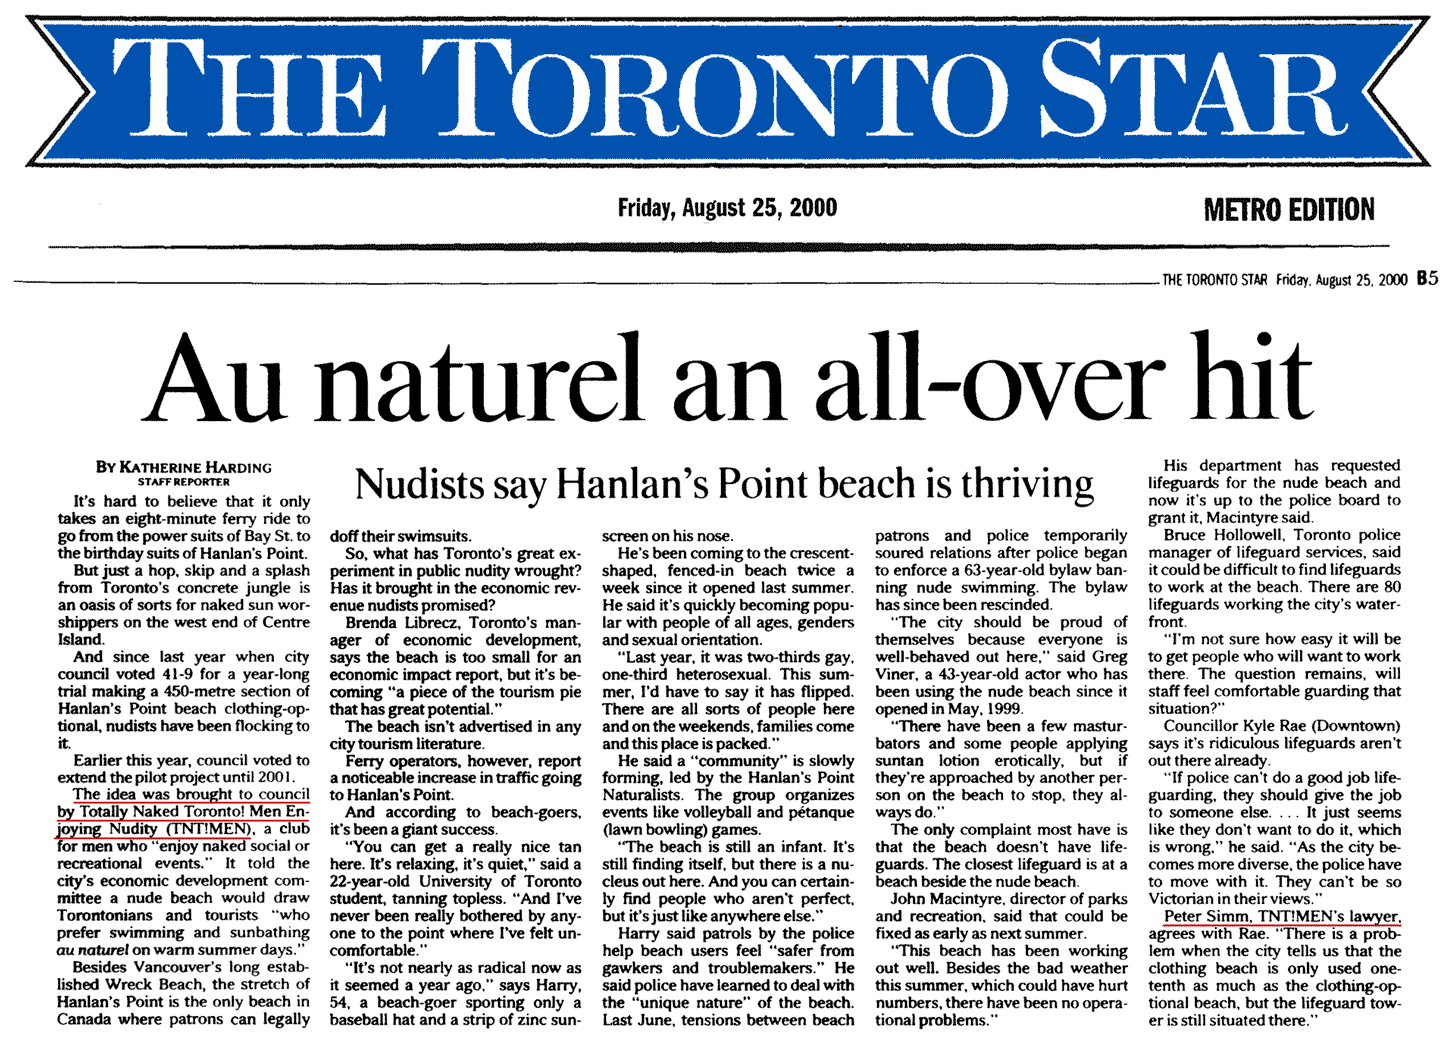 Toronto Star 2000-08-25 - Simm's idea, the Hanlan's Point CO-zone, has proven a success